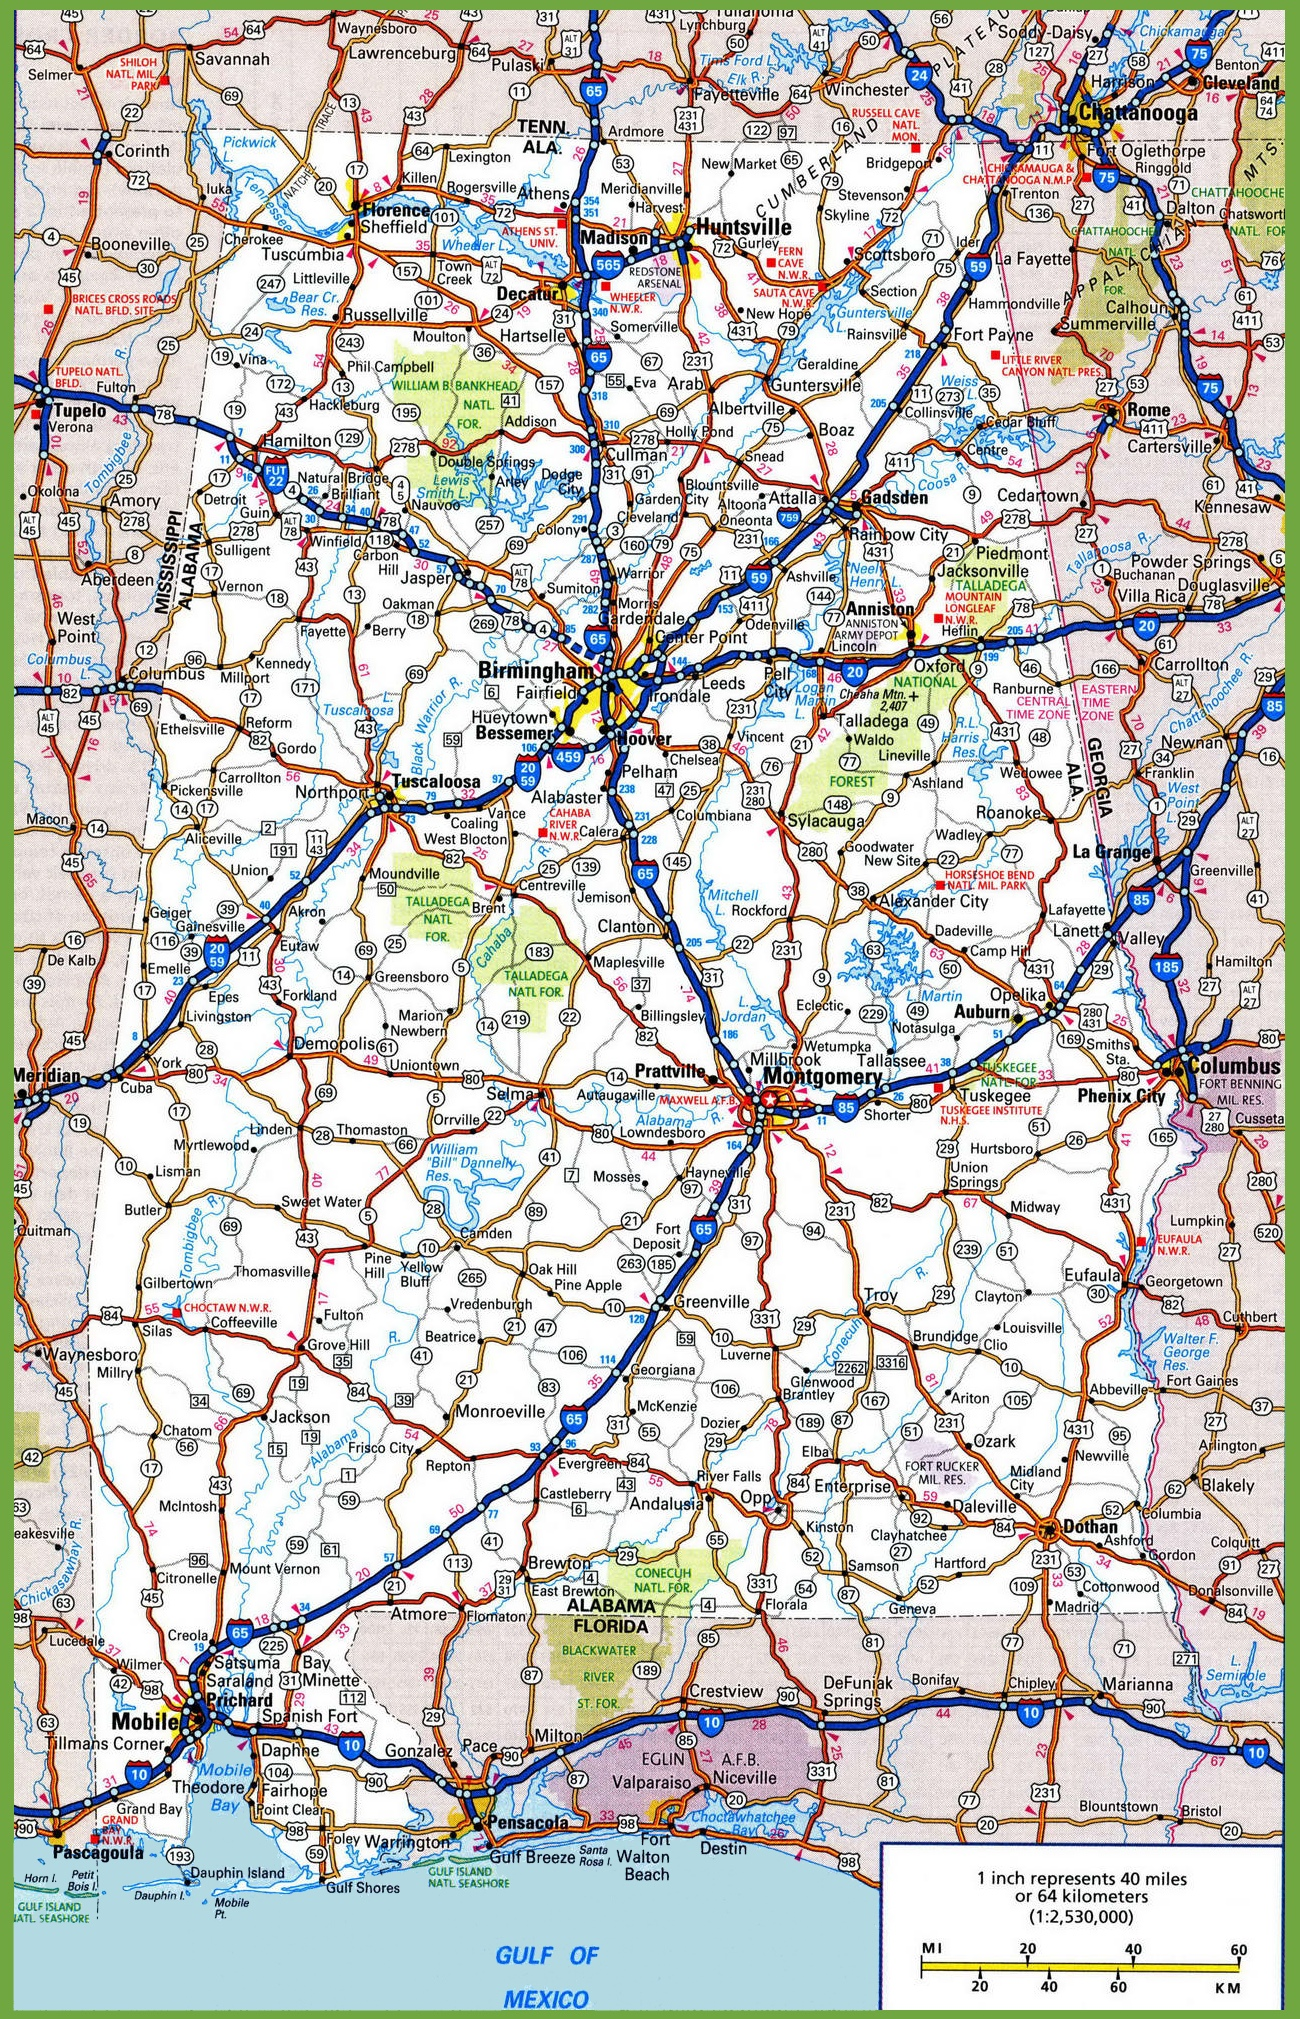 Alabama Road Map - Road map of alabama